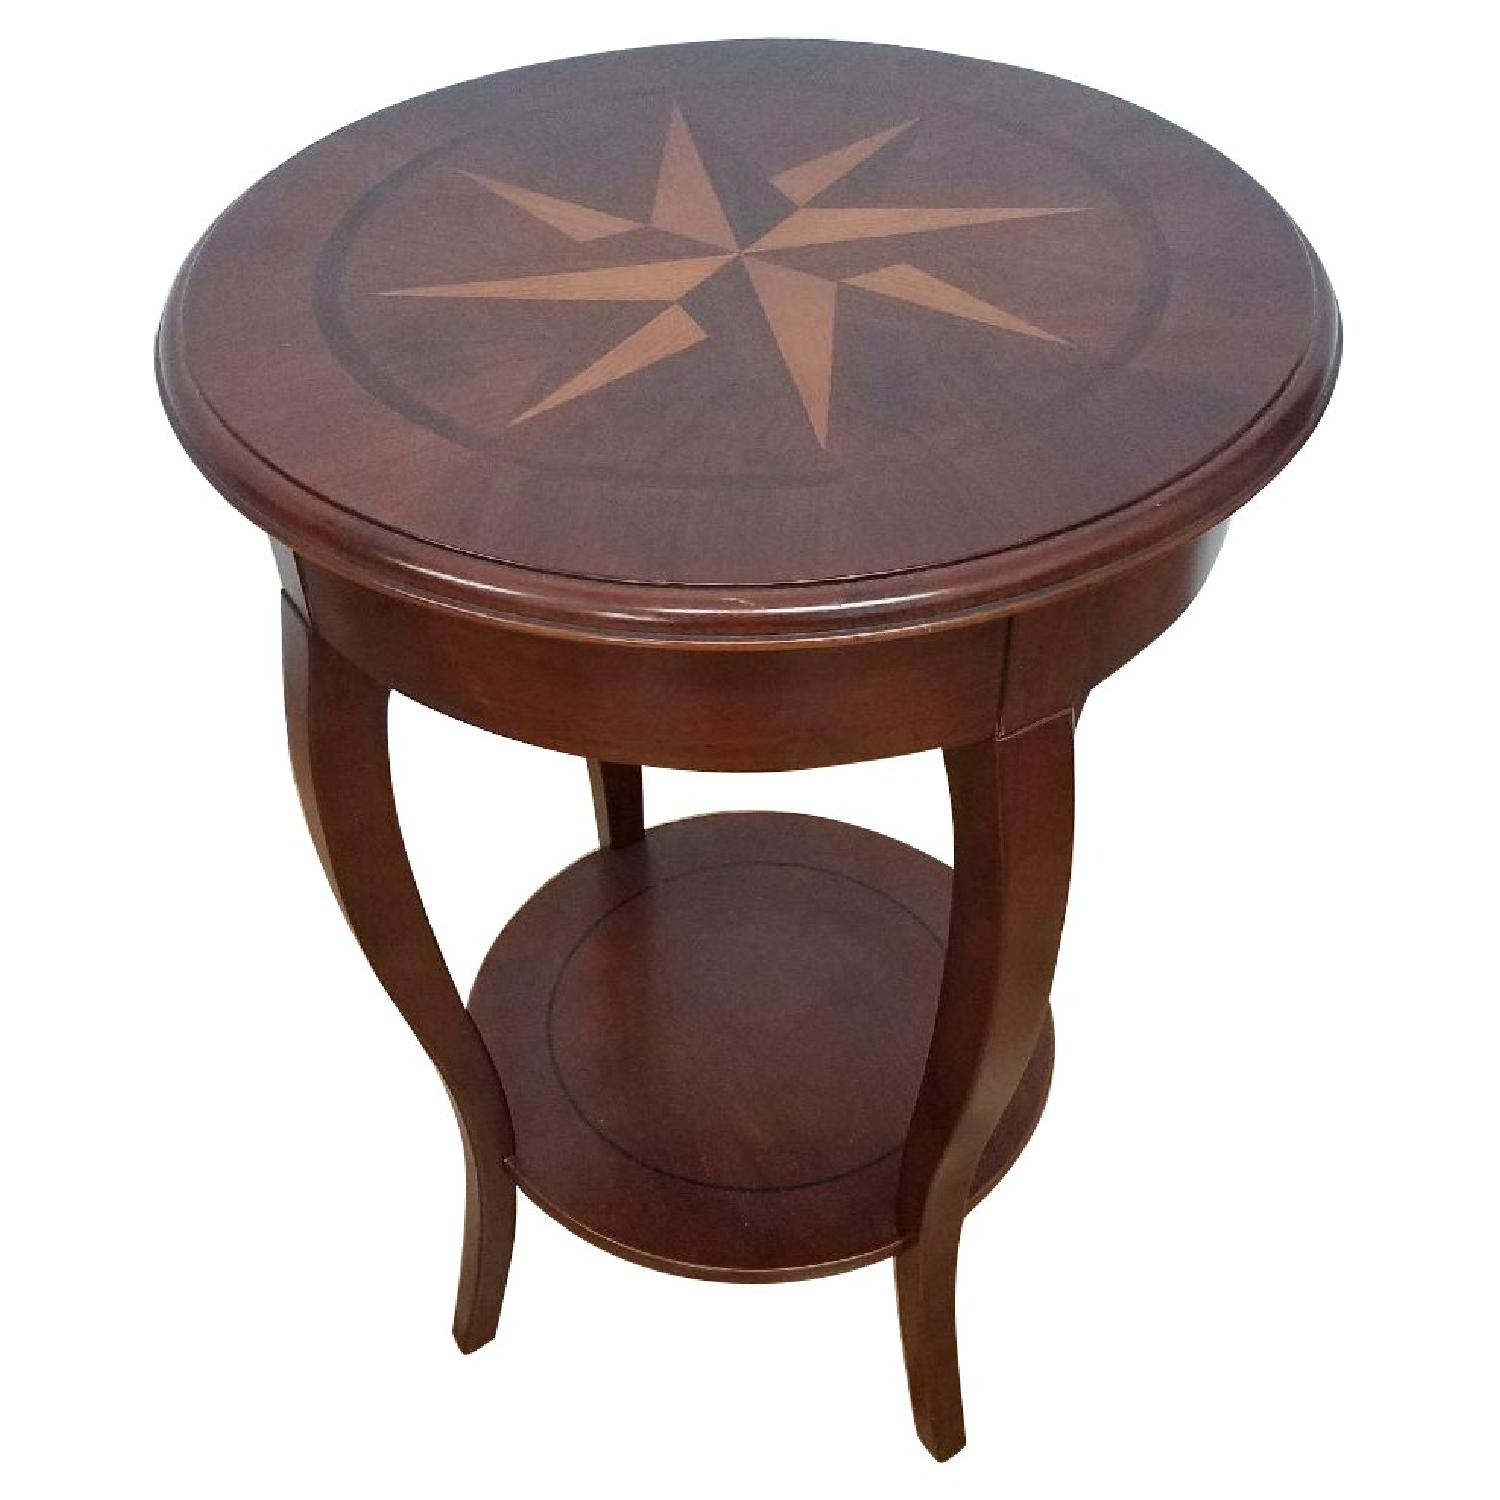 The Bombay Company Compass Side Table